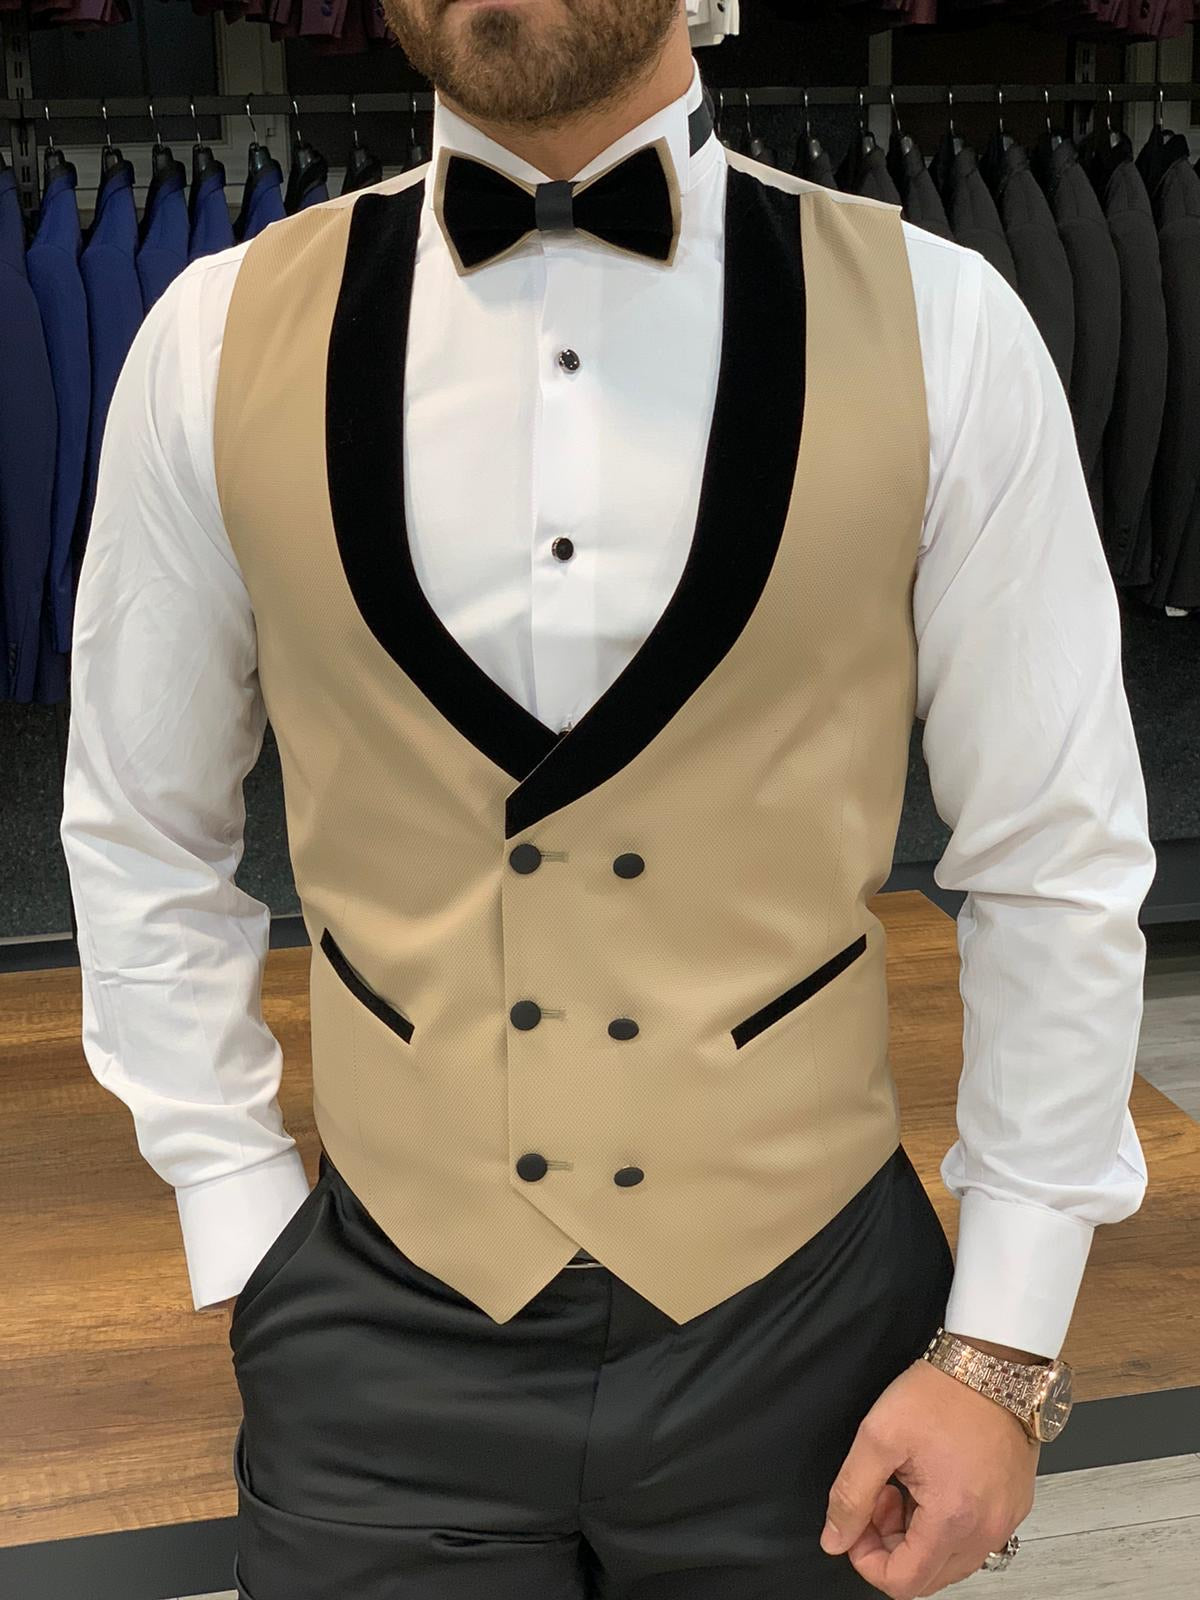 Paruri Royal Slim Fit Gold Tuxedo